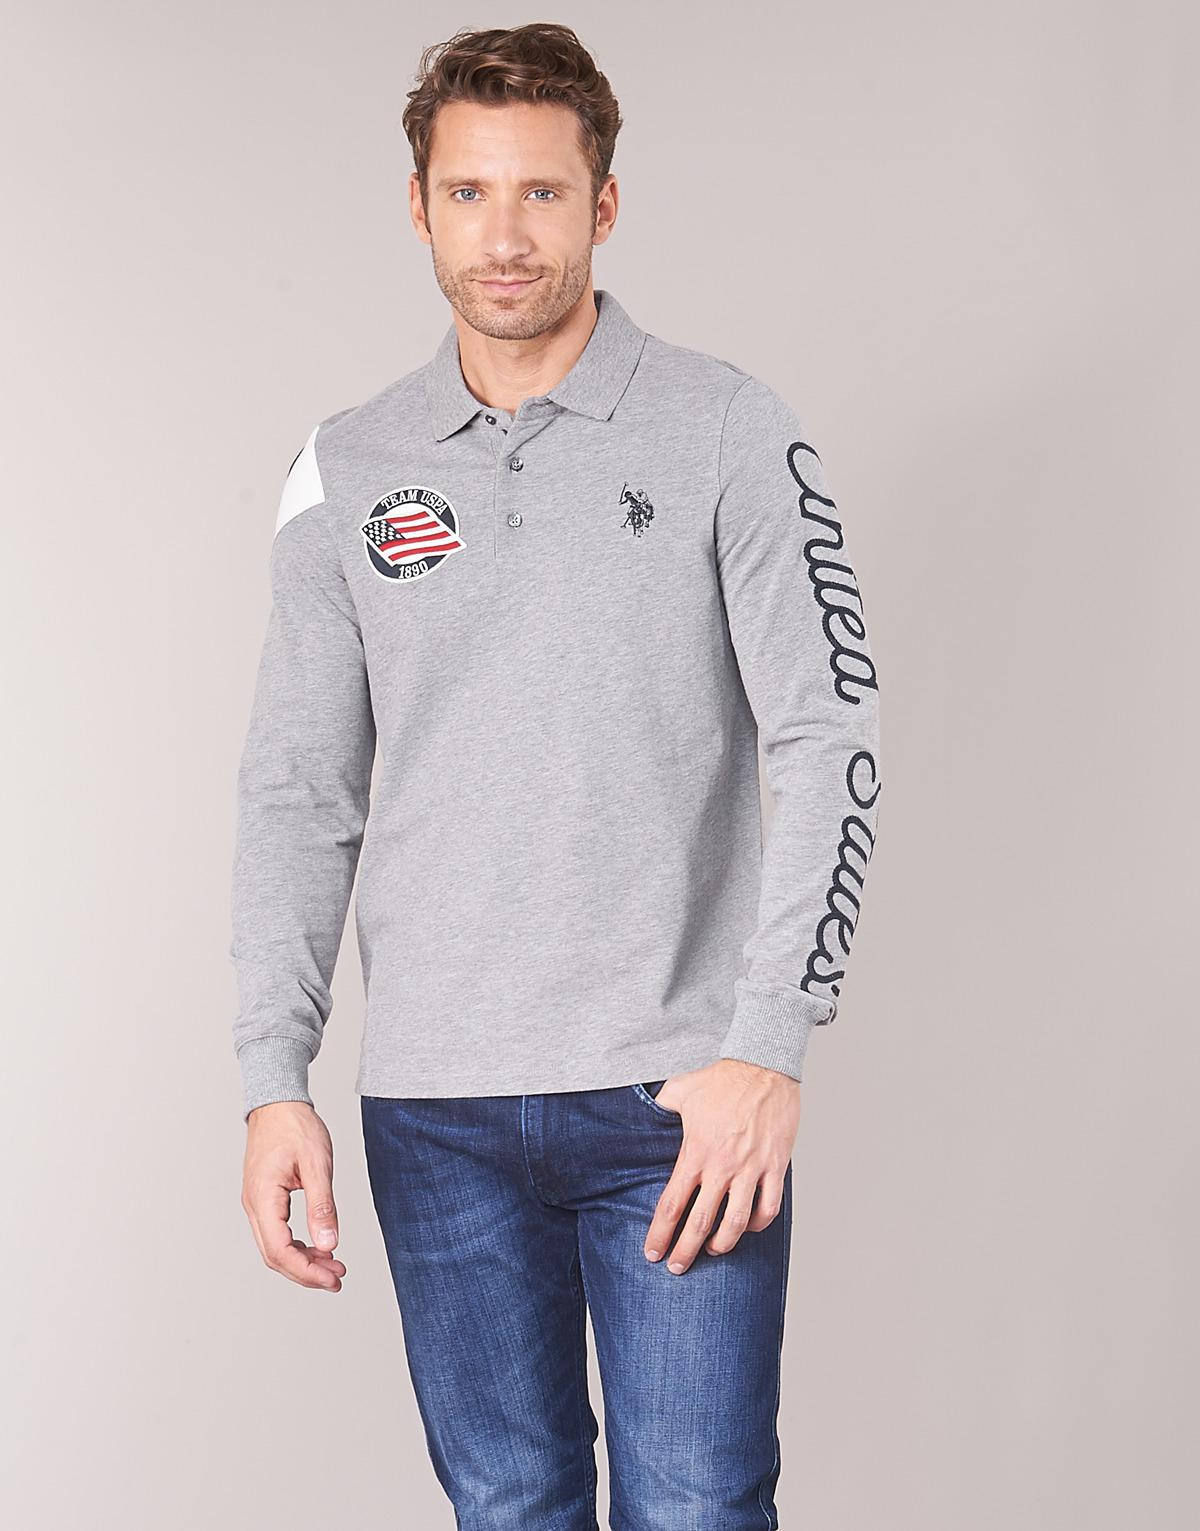 Us Polo Assn United States Polo Polo Shirt In Gray For Men Lyst